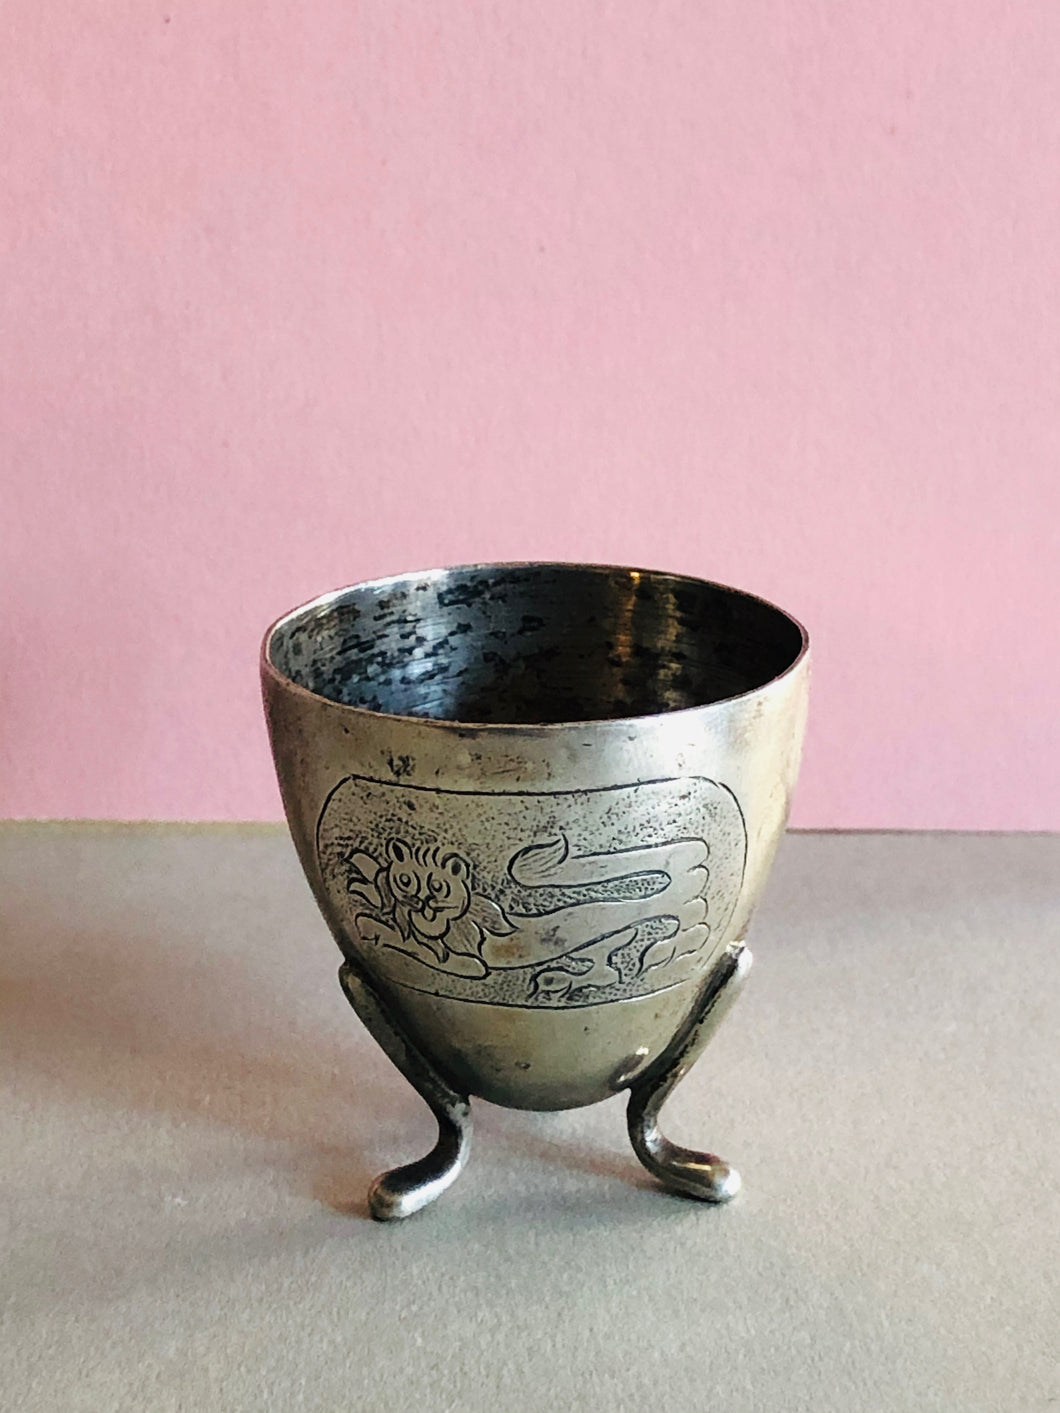 The Director Elizabeth - Antique Silver Plate Egg Cup